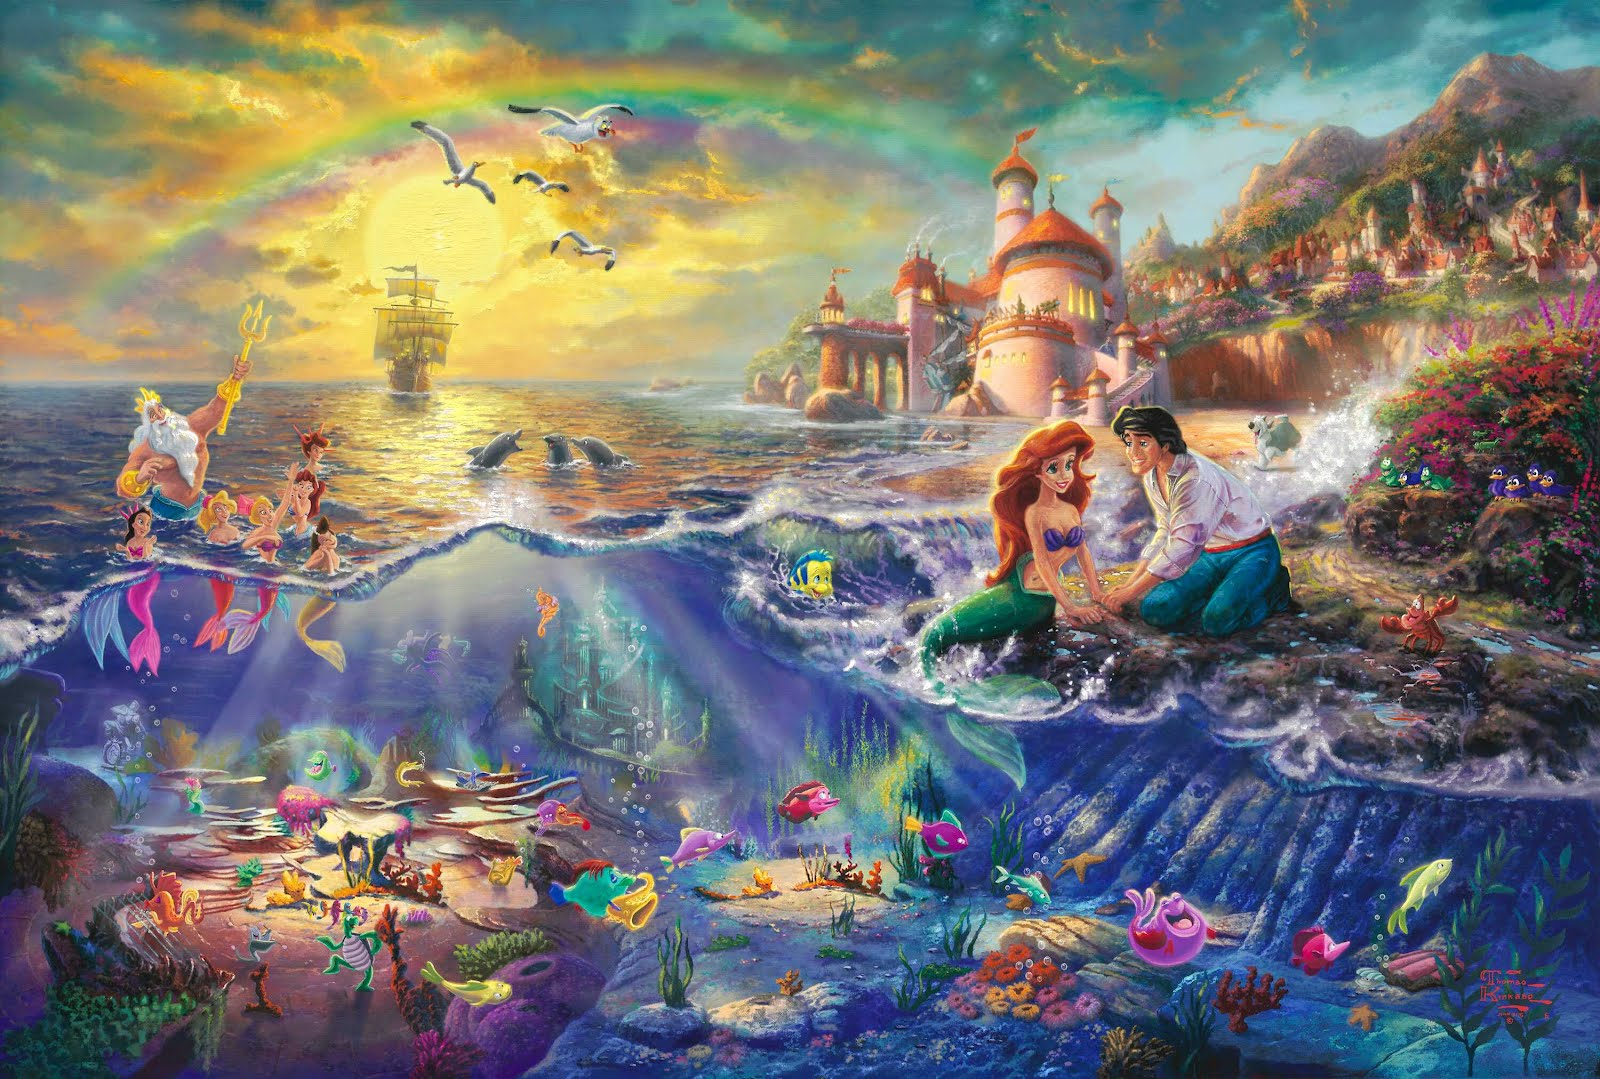 enzo+the+little+mermaid+2012+1990+1989+eric+prince+principe+princess+princesas+sebastian+flounder+king+triton+rey+hermanas+sisters+max+ursula The Disney Paintings of Thomas Kinkade (1958 2012)